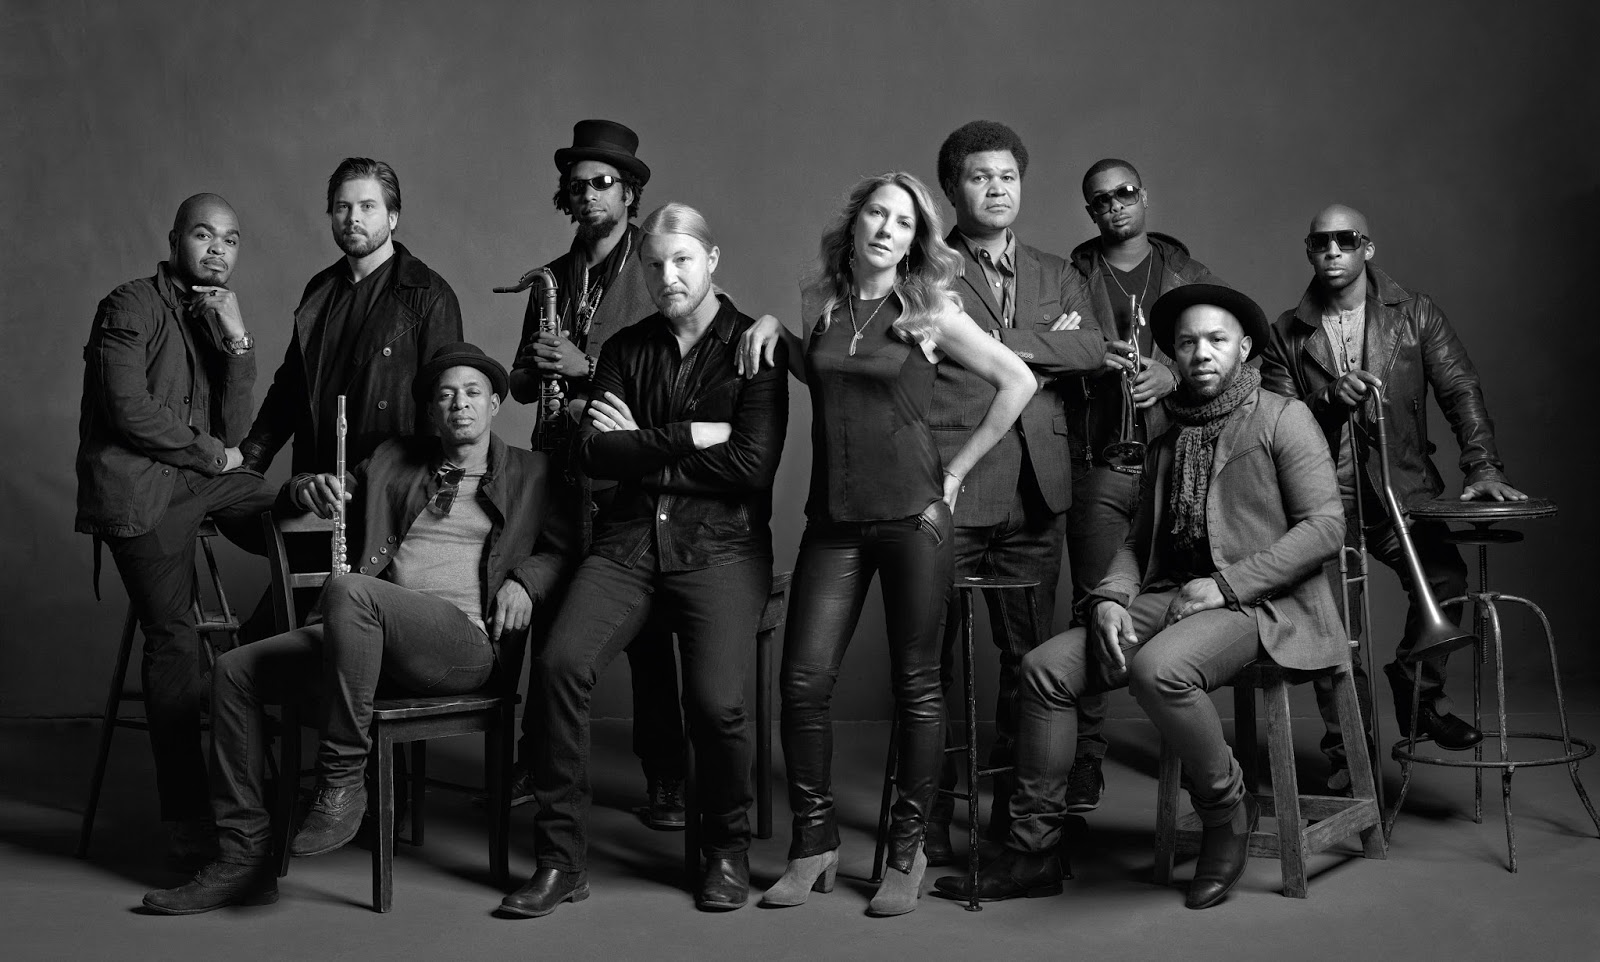 New Album Releases Let Me Get By Tedeschi Trucks Band